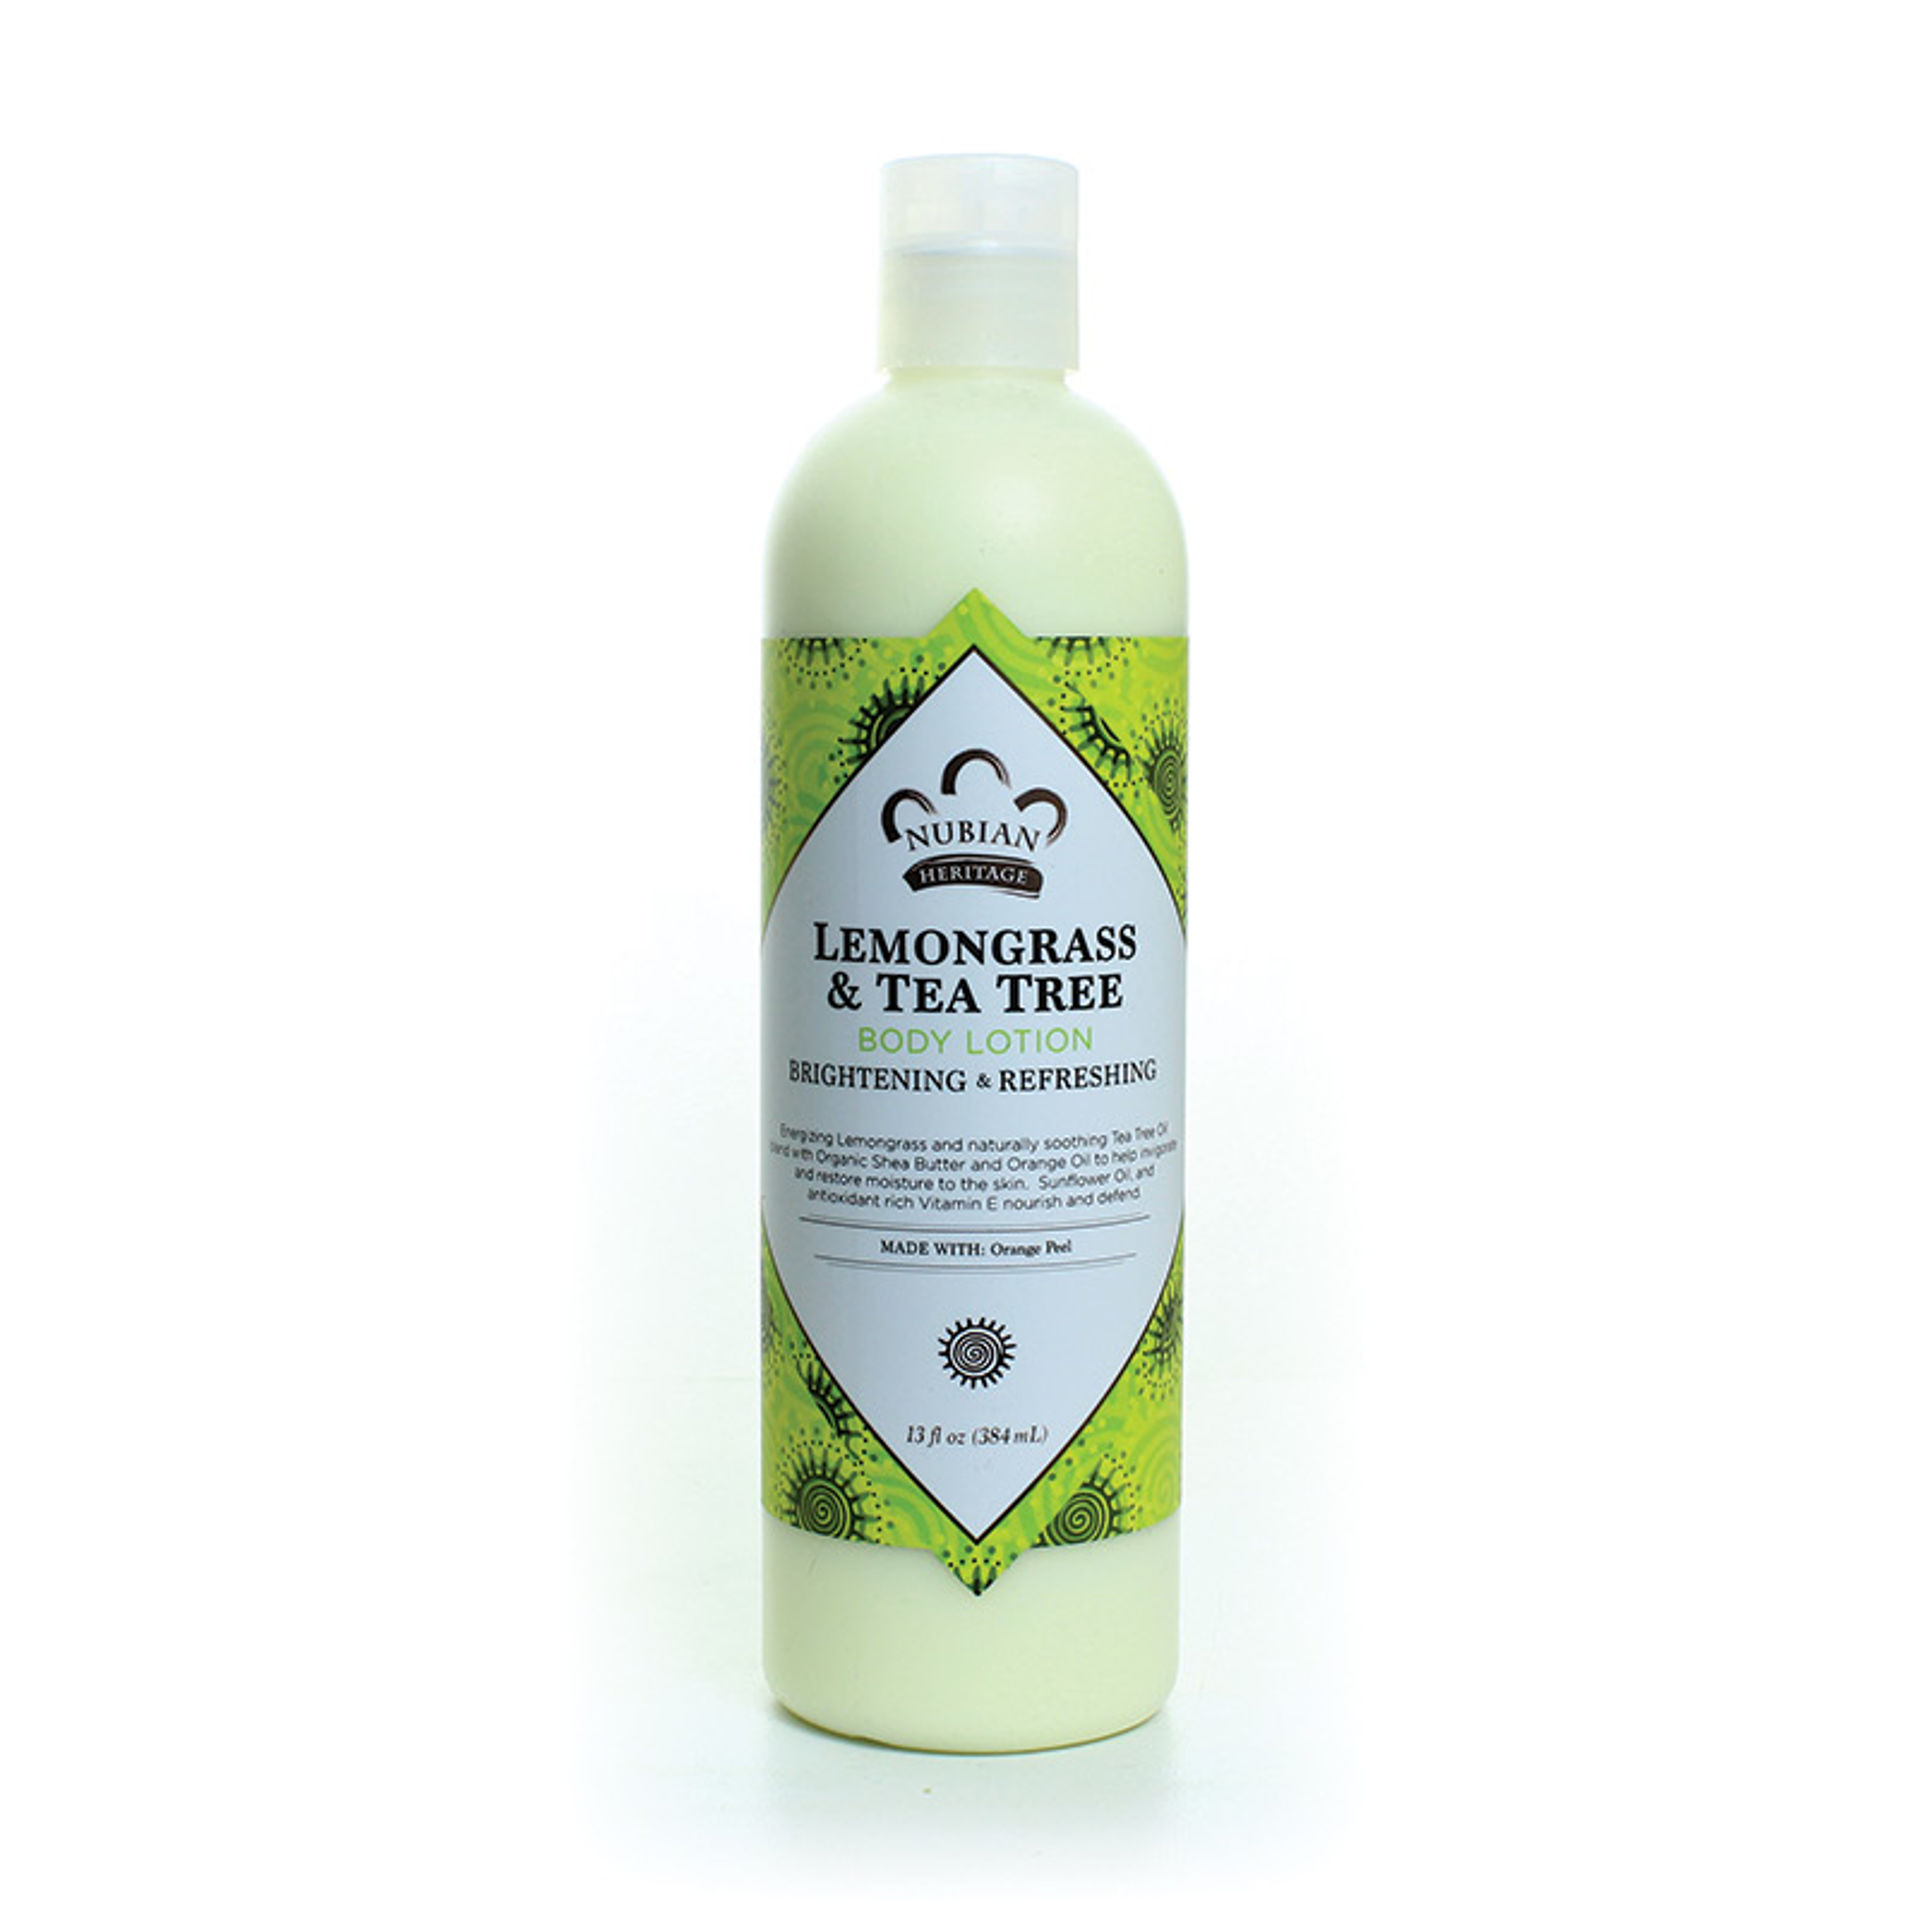 Picture of Lemongrass & Tea Tree Lotion - 13 oz.